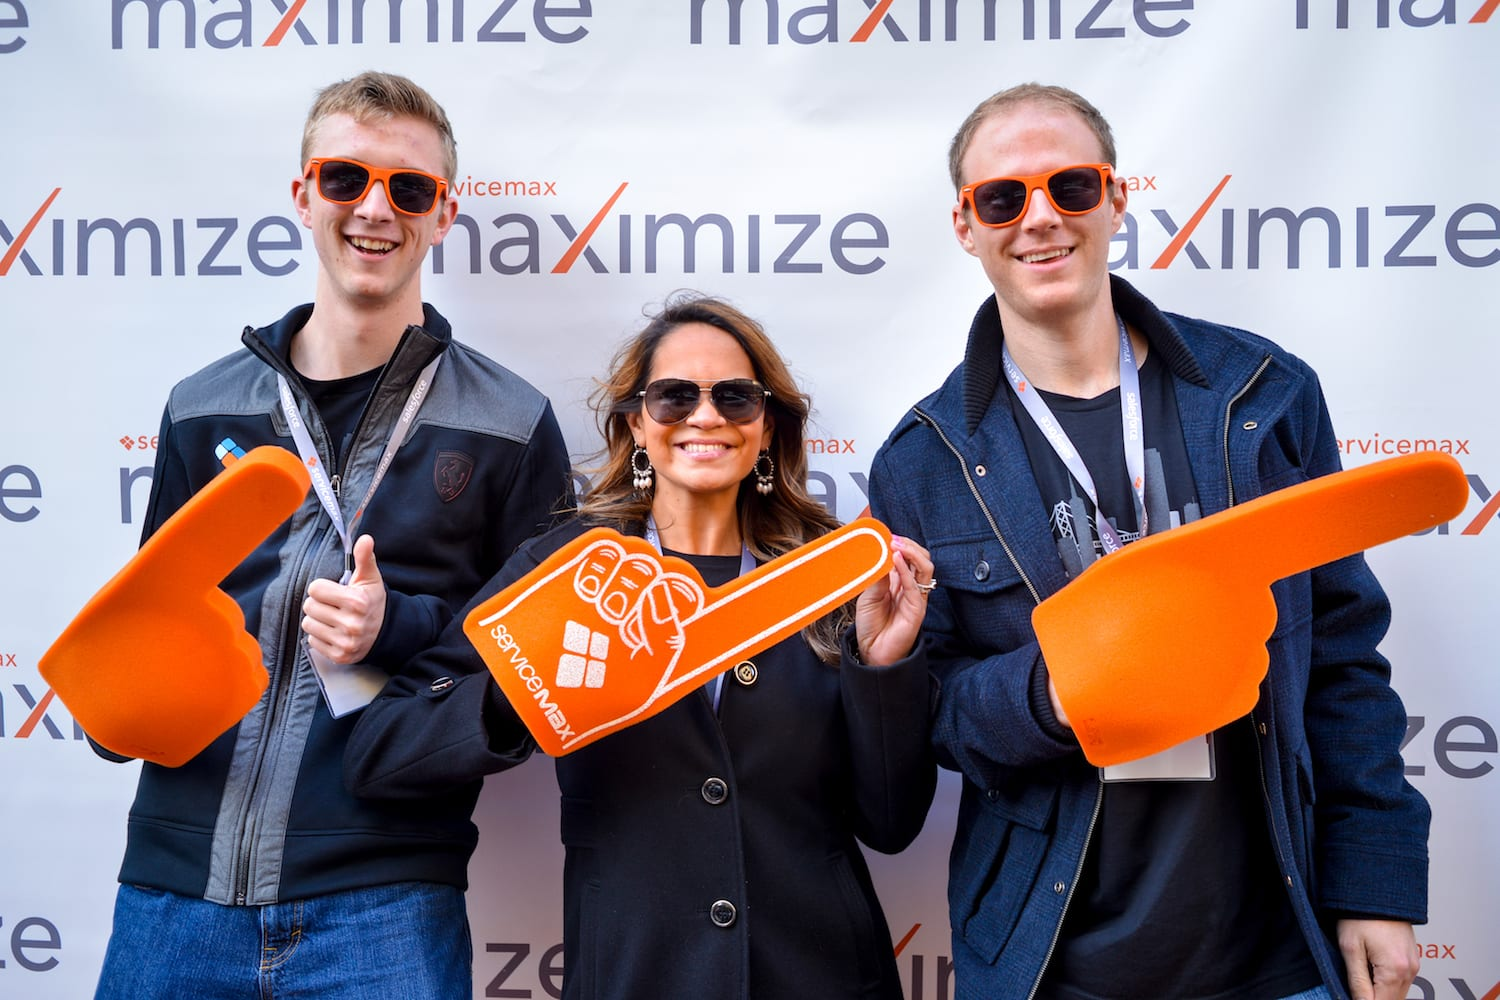 5 Reasons to Attend Maximize, the Most Valuable Field Service Event